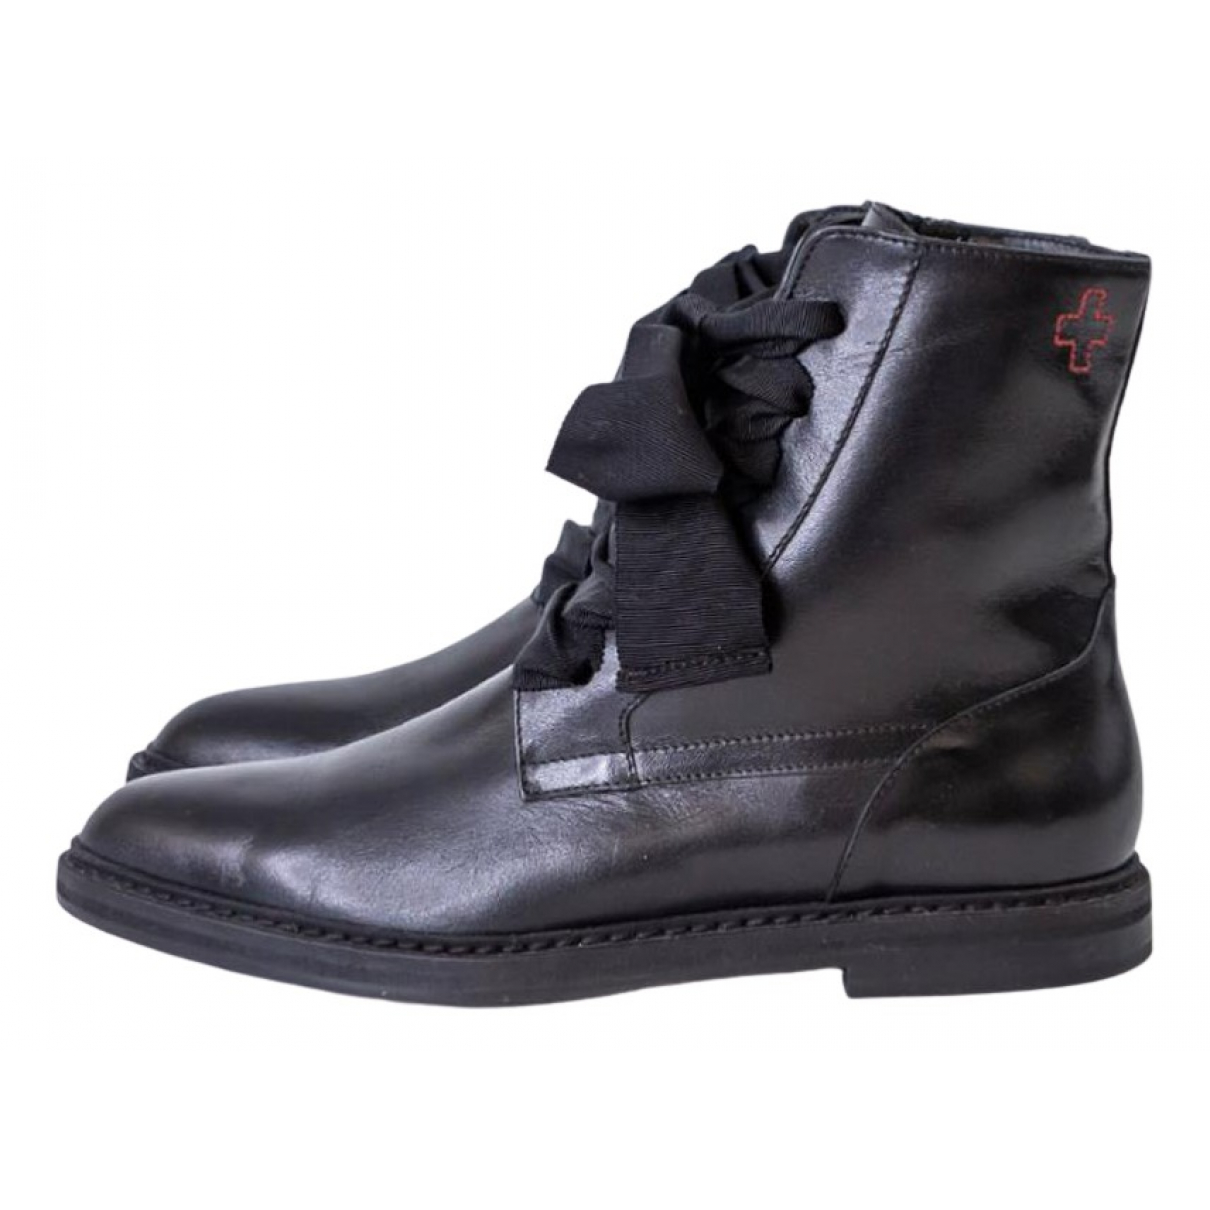 Af Vandevorst N Black Leather Boots for Women 38 EU